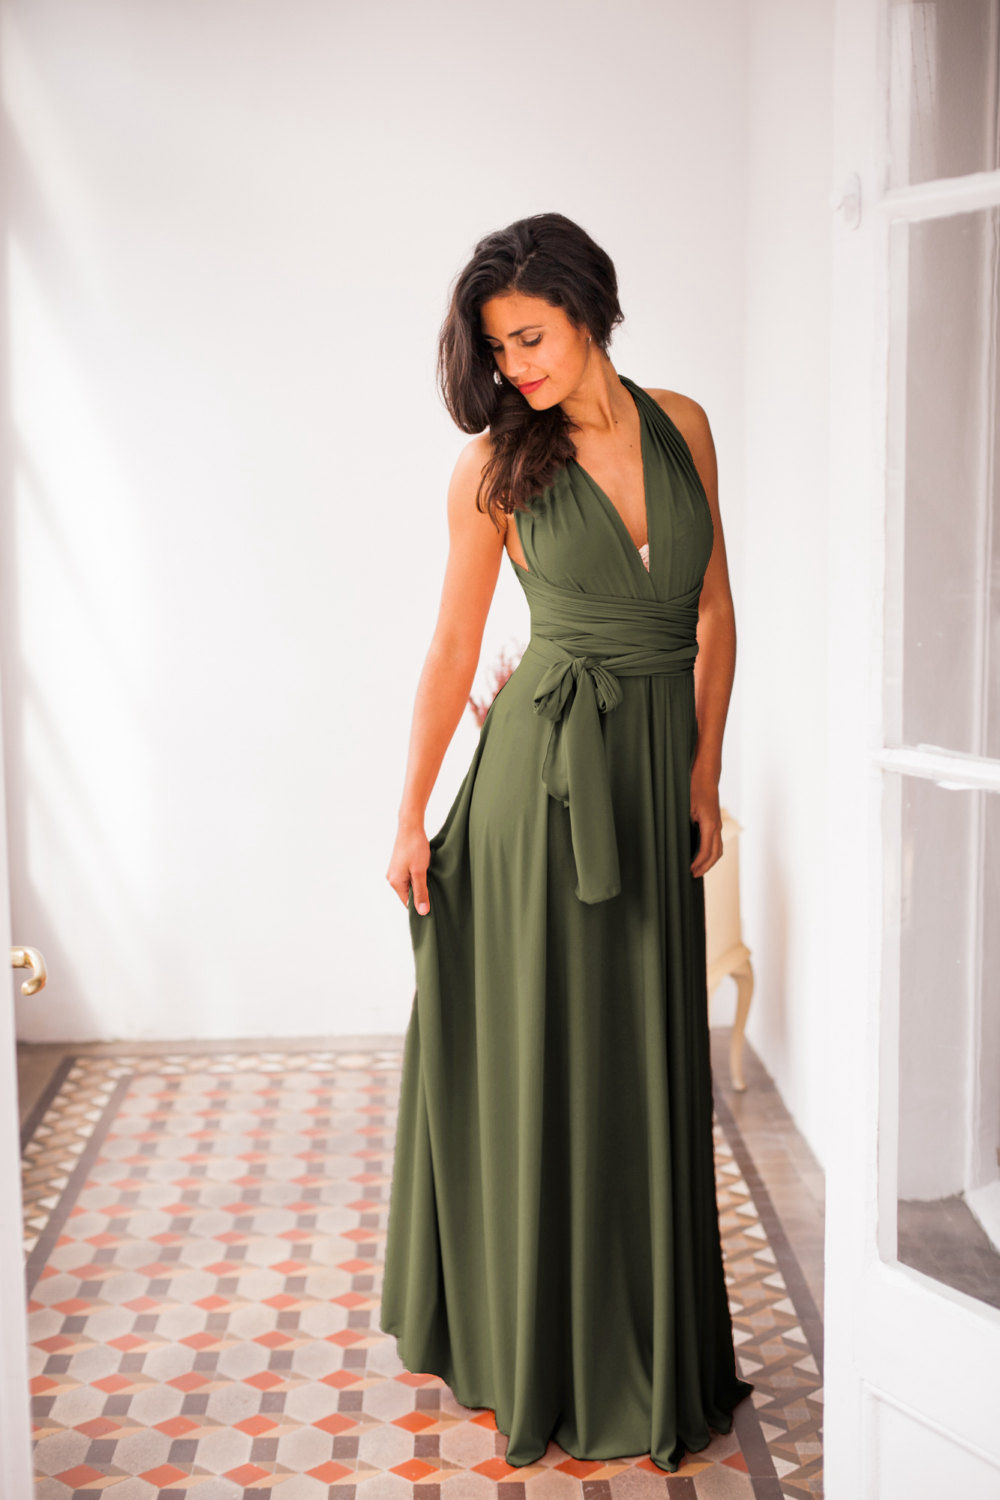 Green infinity dress dark green bridesmaid dress dark sage green olive green infinity dress dark green bridesmaid dress dark sage green dress long dark green dress ombrellifo Gallery